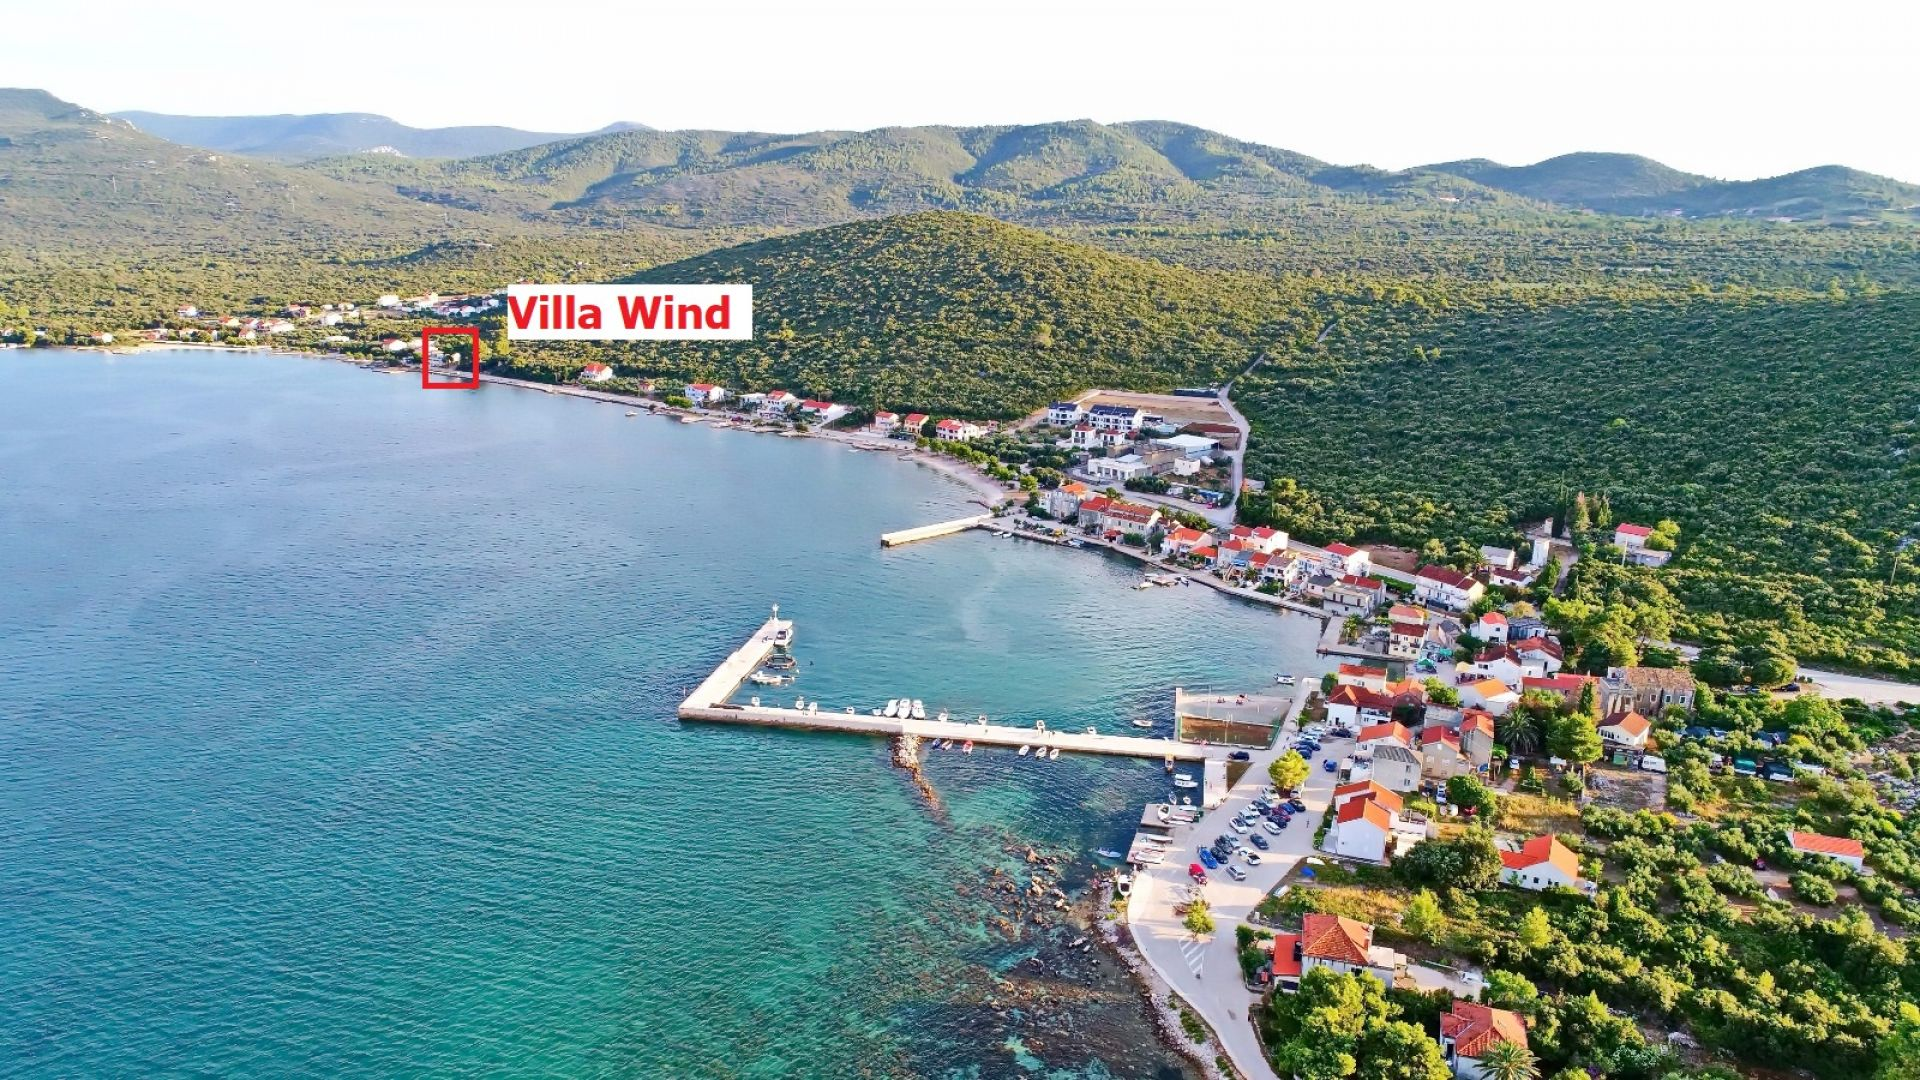 Peljesac apartments by the sea